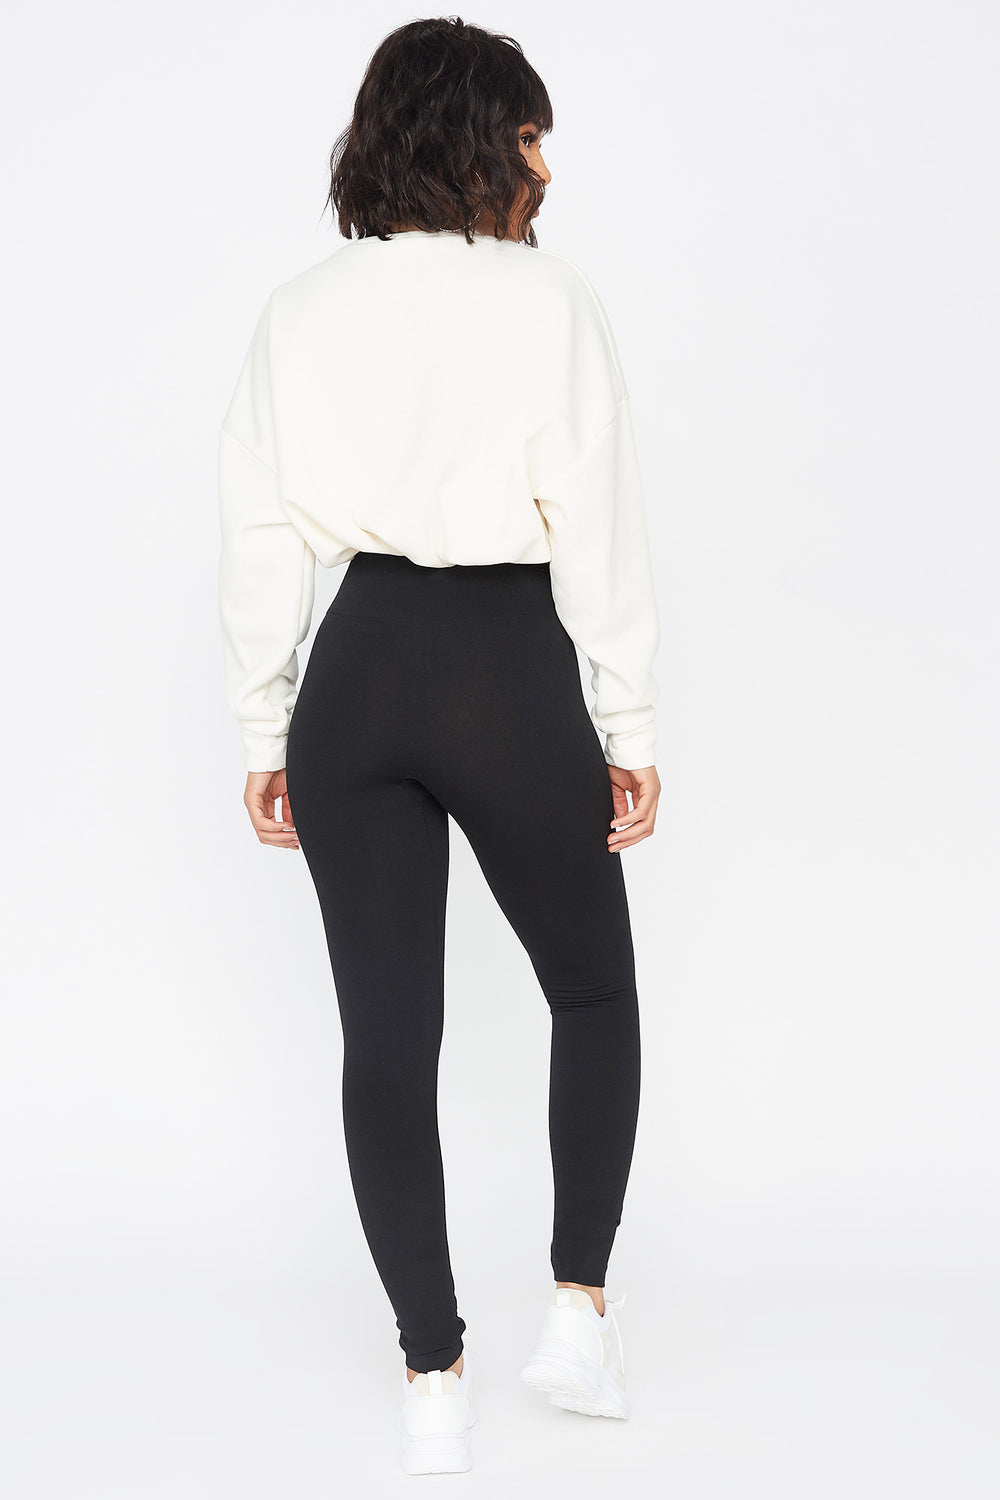 High-Rise Fleece Lined Legging Black